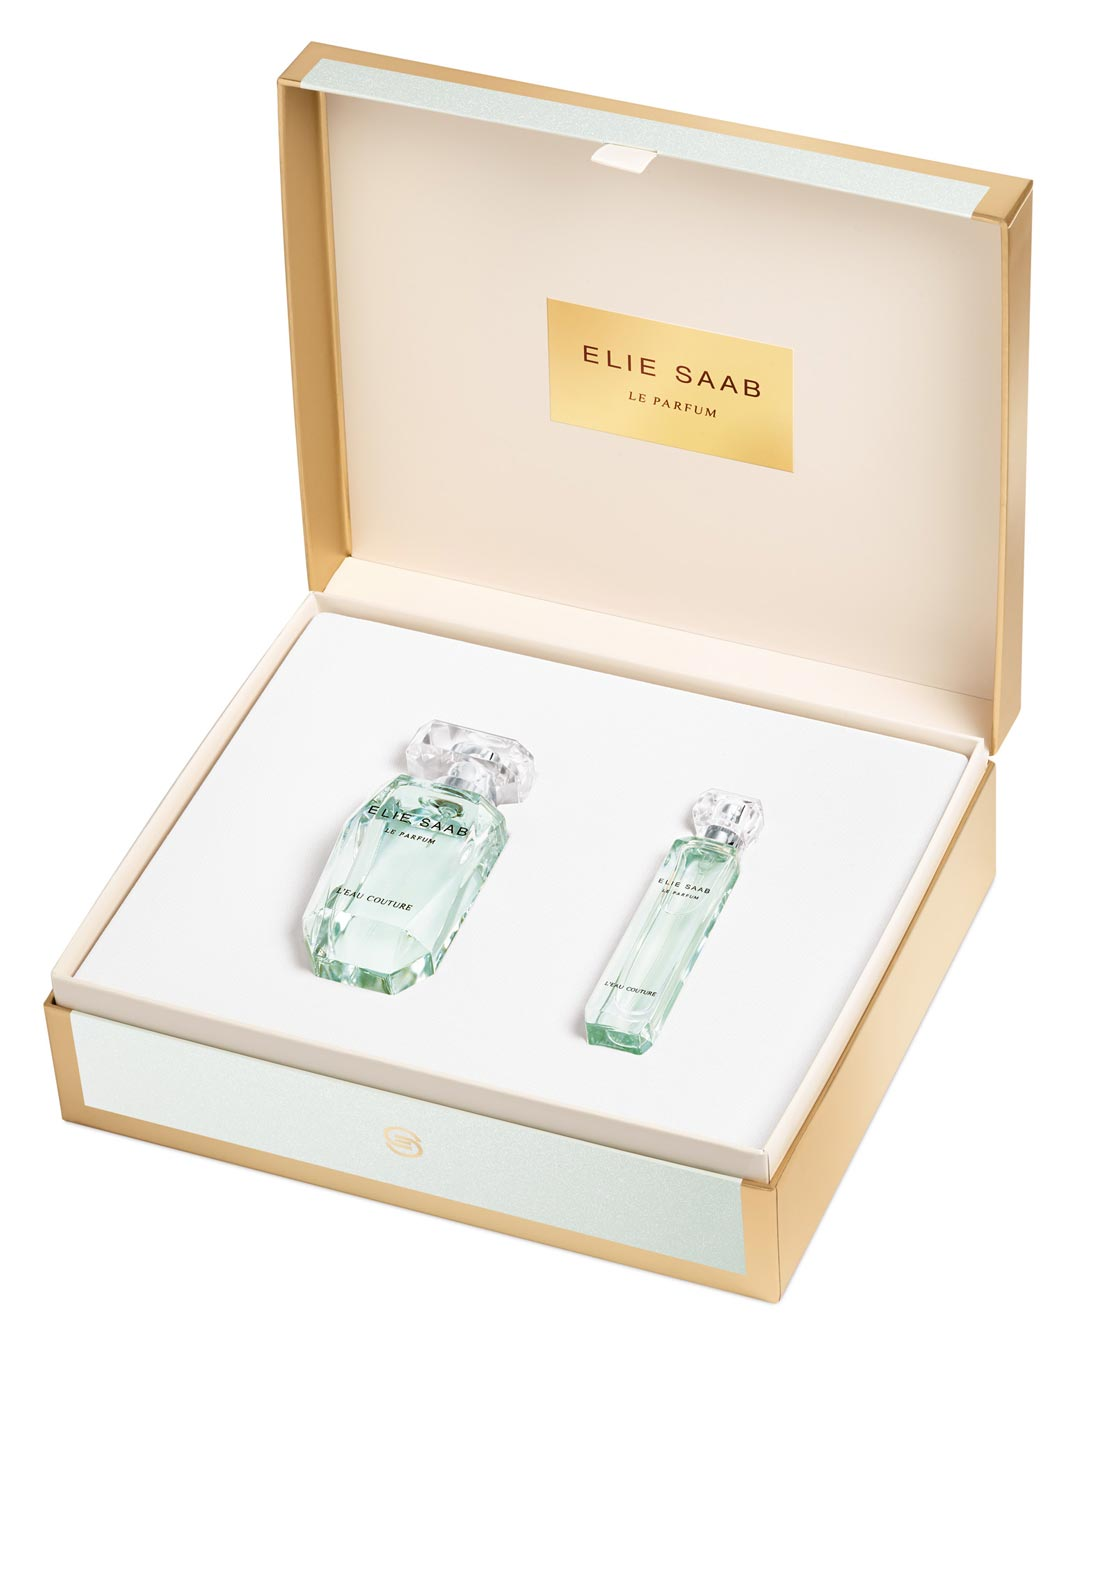 Elie Saab L'eau Couture Womens Gift Set, 50ml